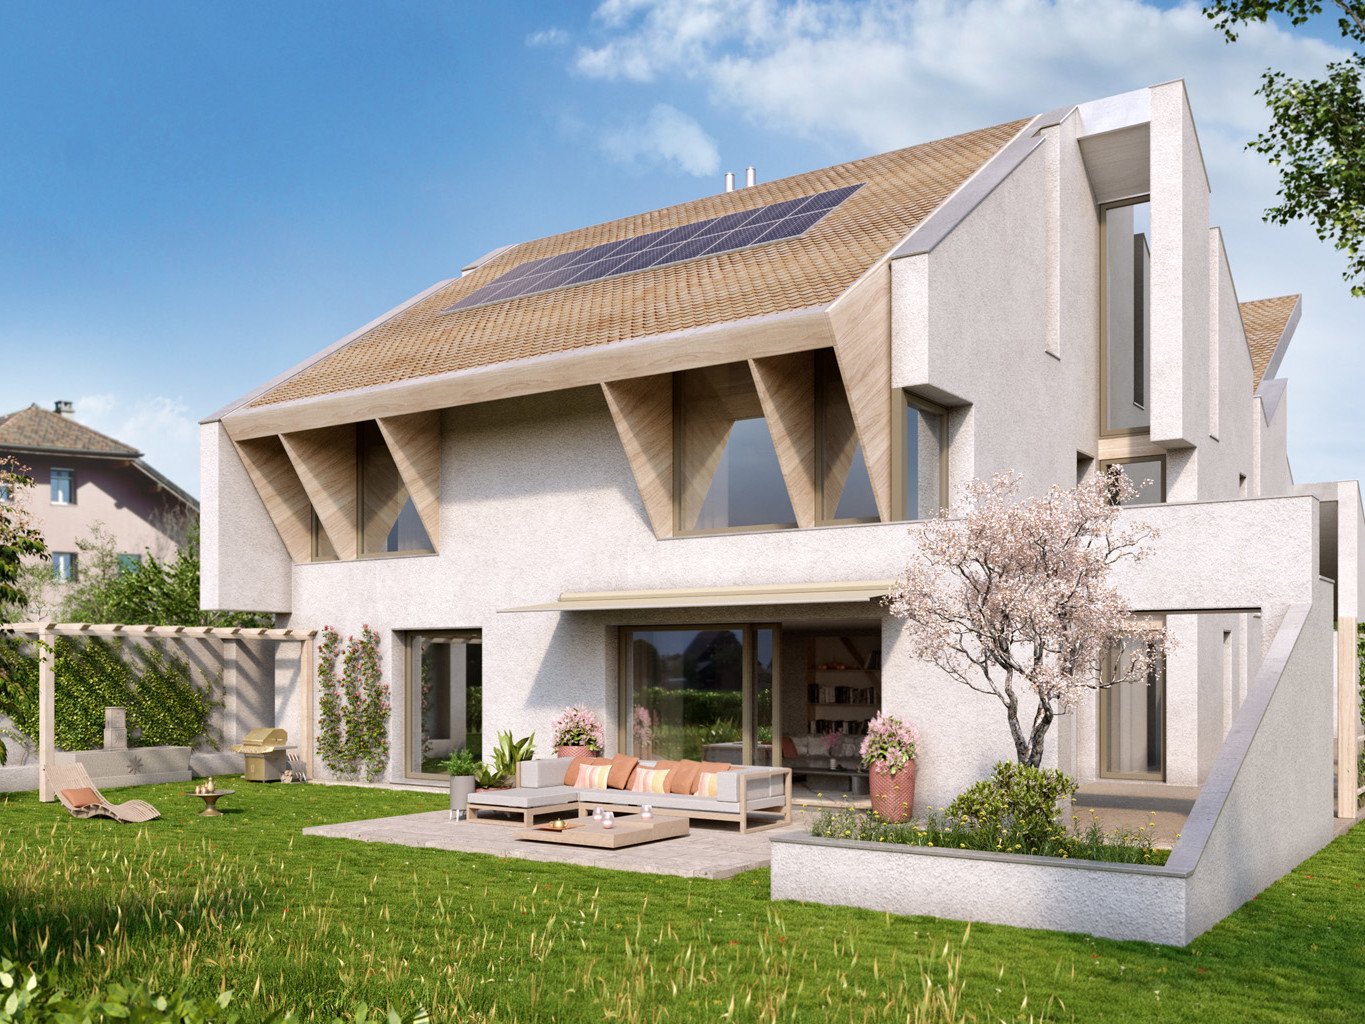 construction villas à Gland - Romanens management